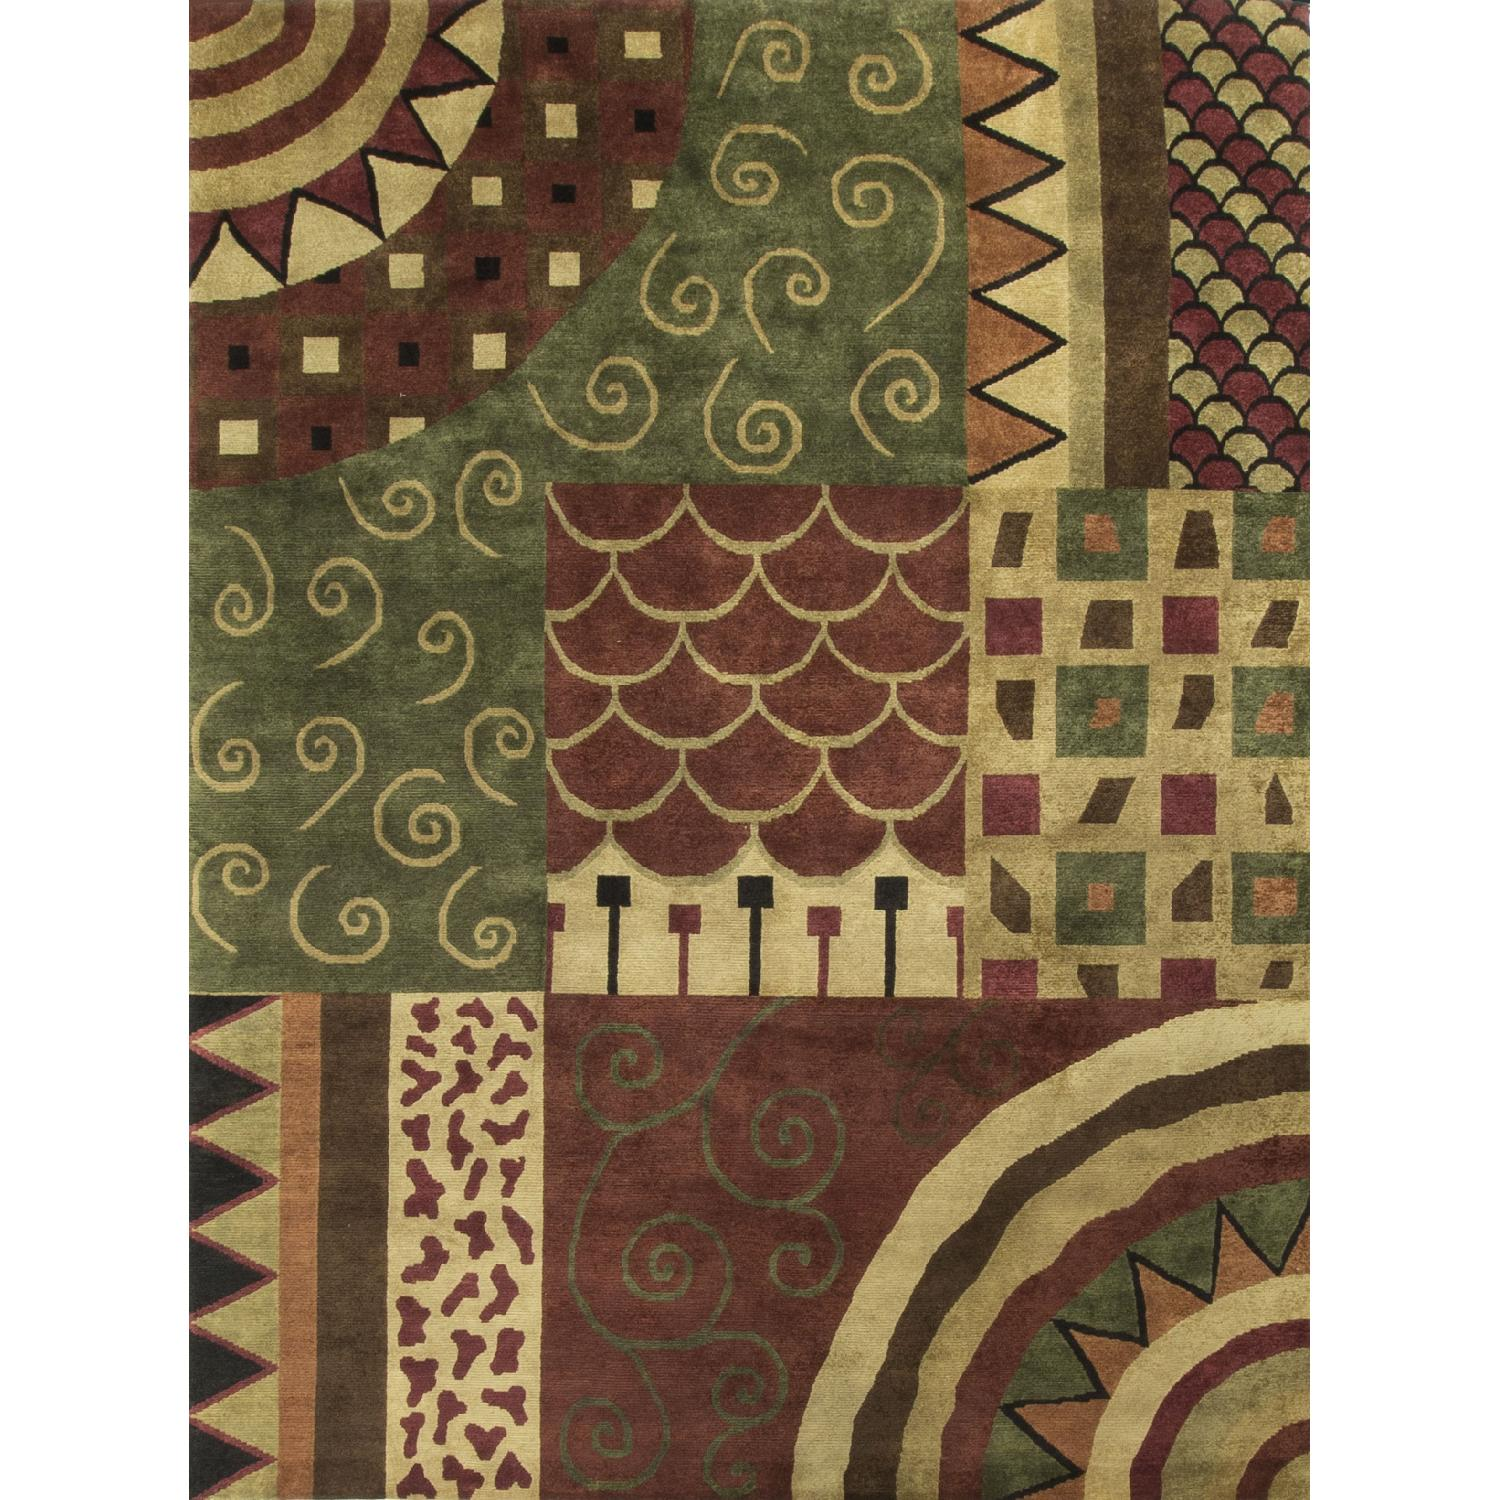 Modern Contemporary Hand Knotted Wool Rug in Beige/Red/Black/Green - image-0